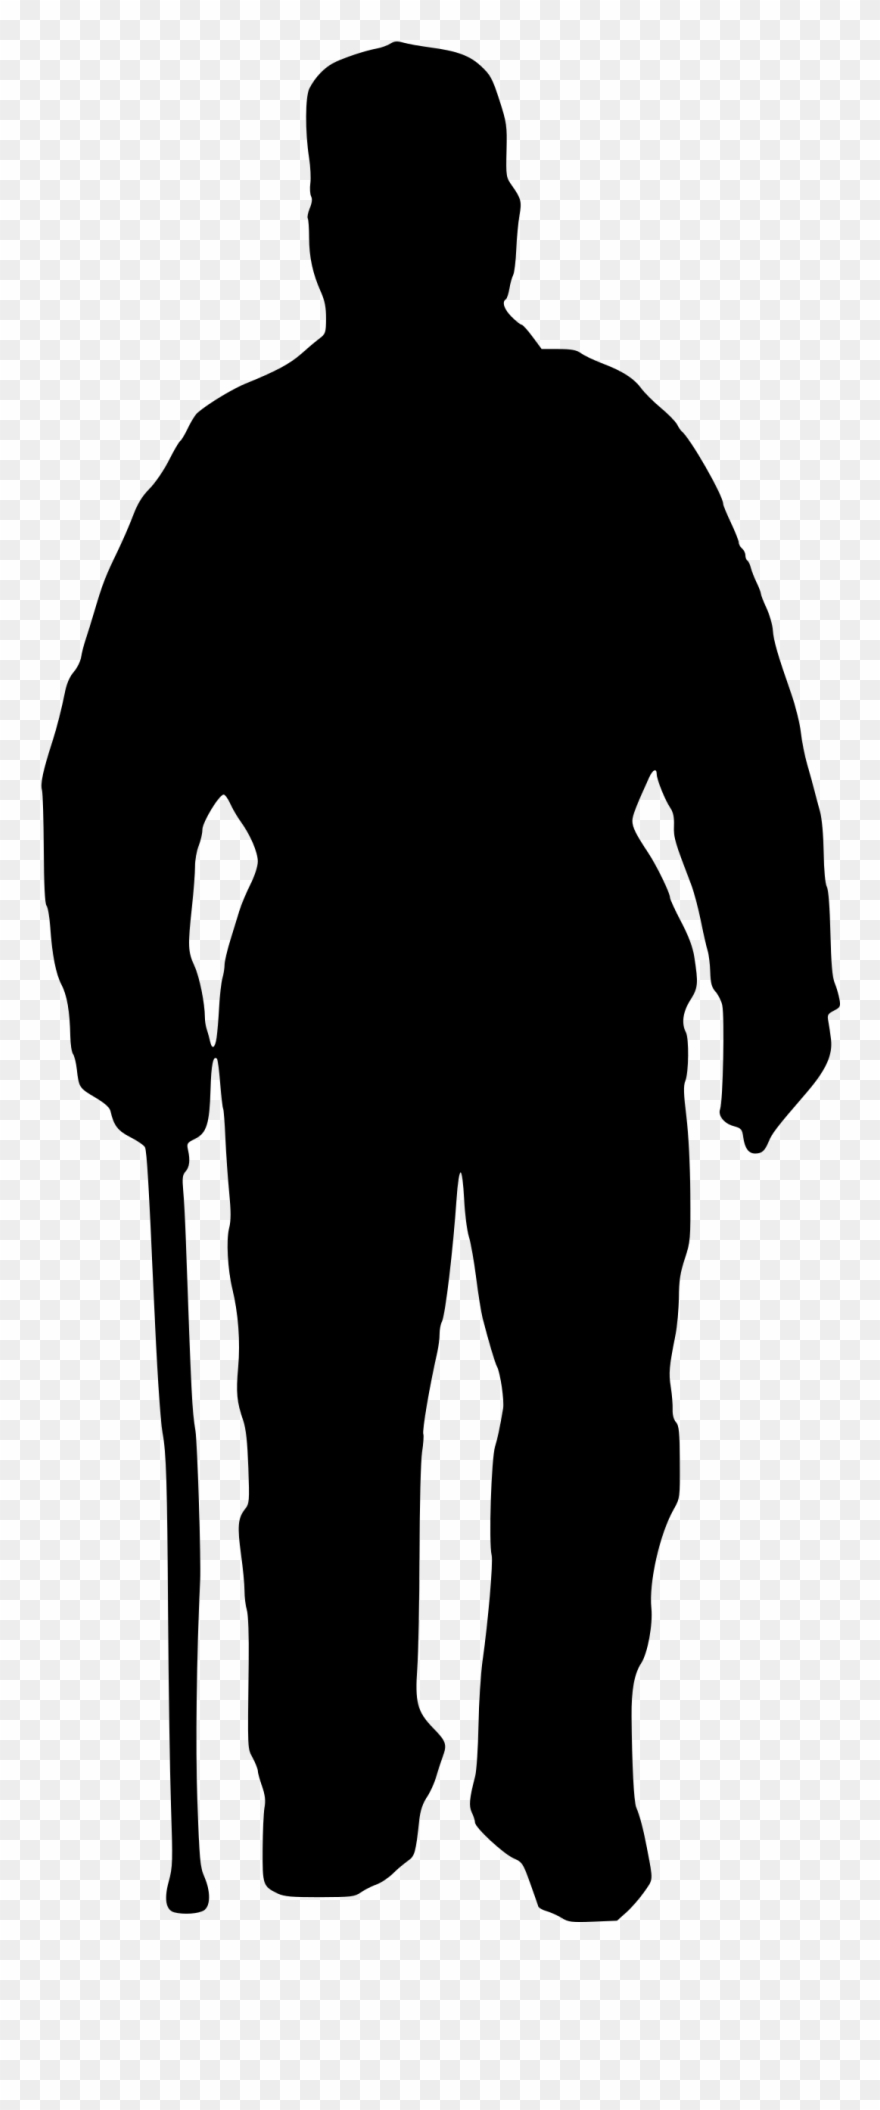 Old man clipart black and white png png royalty free library Christian Men And Women Silhouettes Png - Silhouette Of An ... png royalty free library